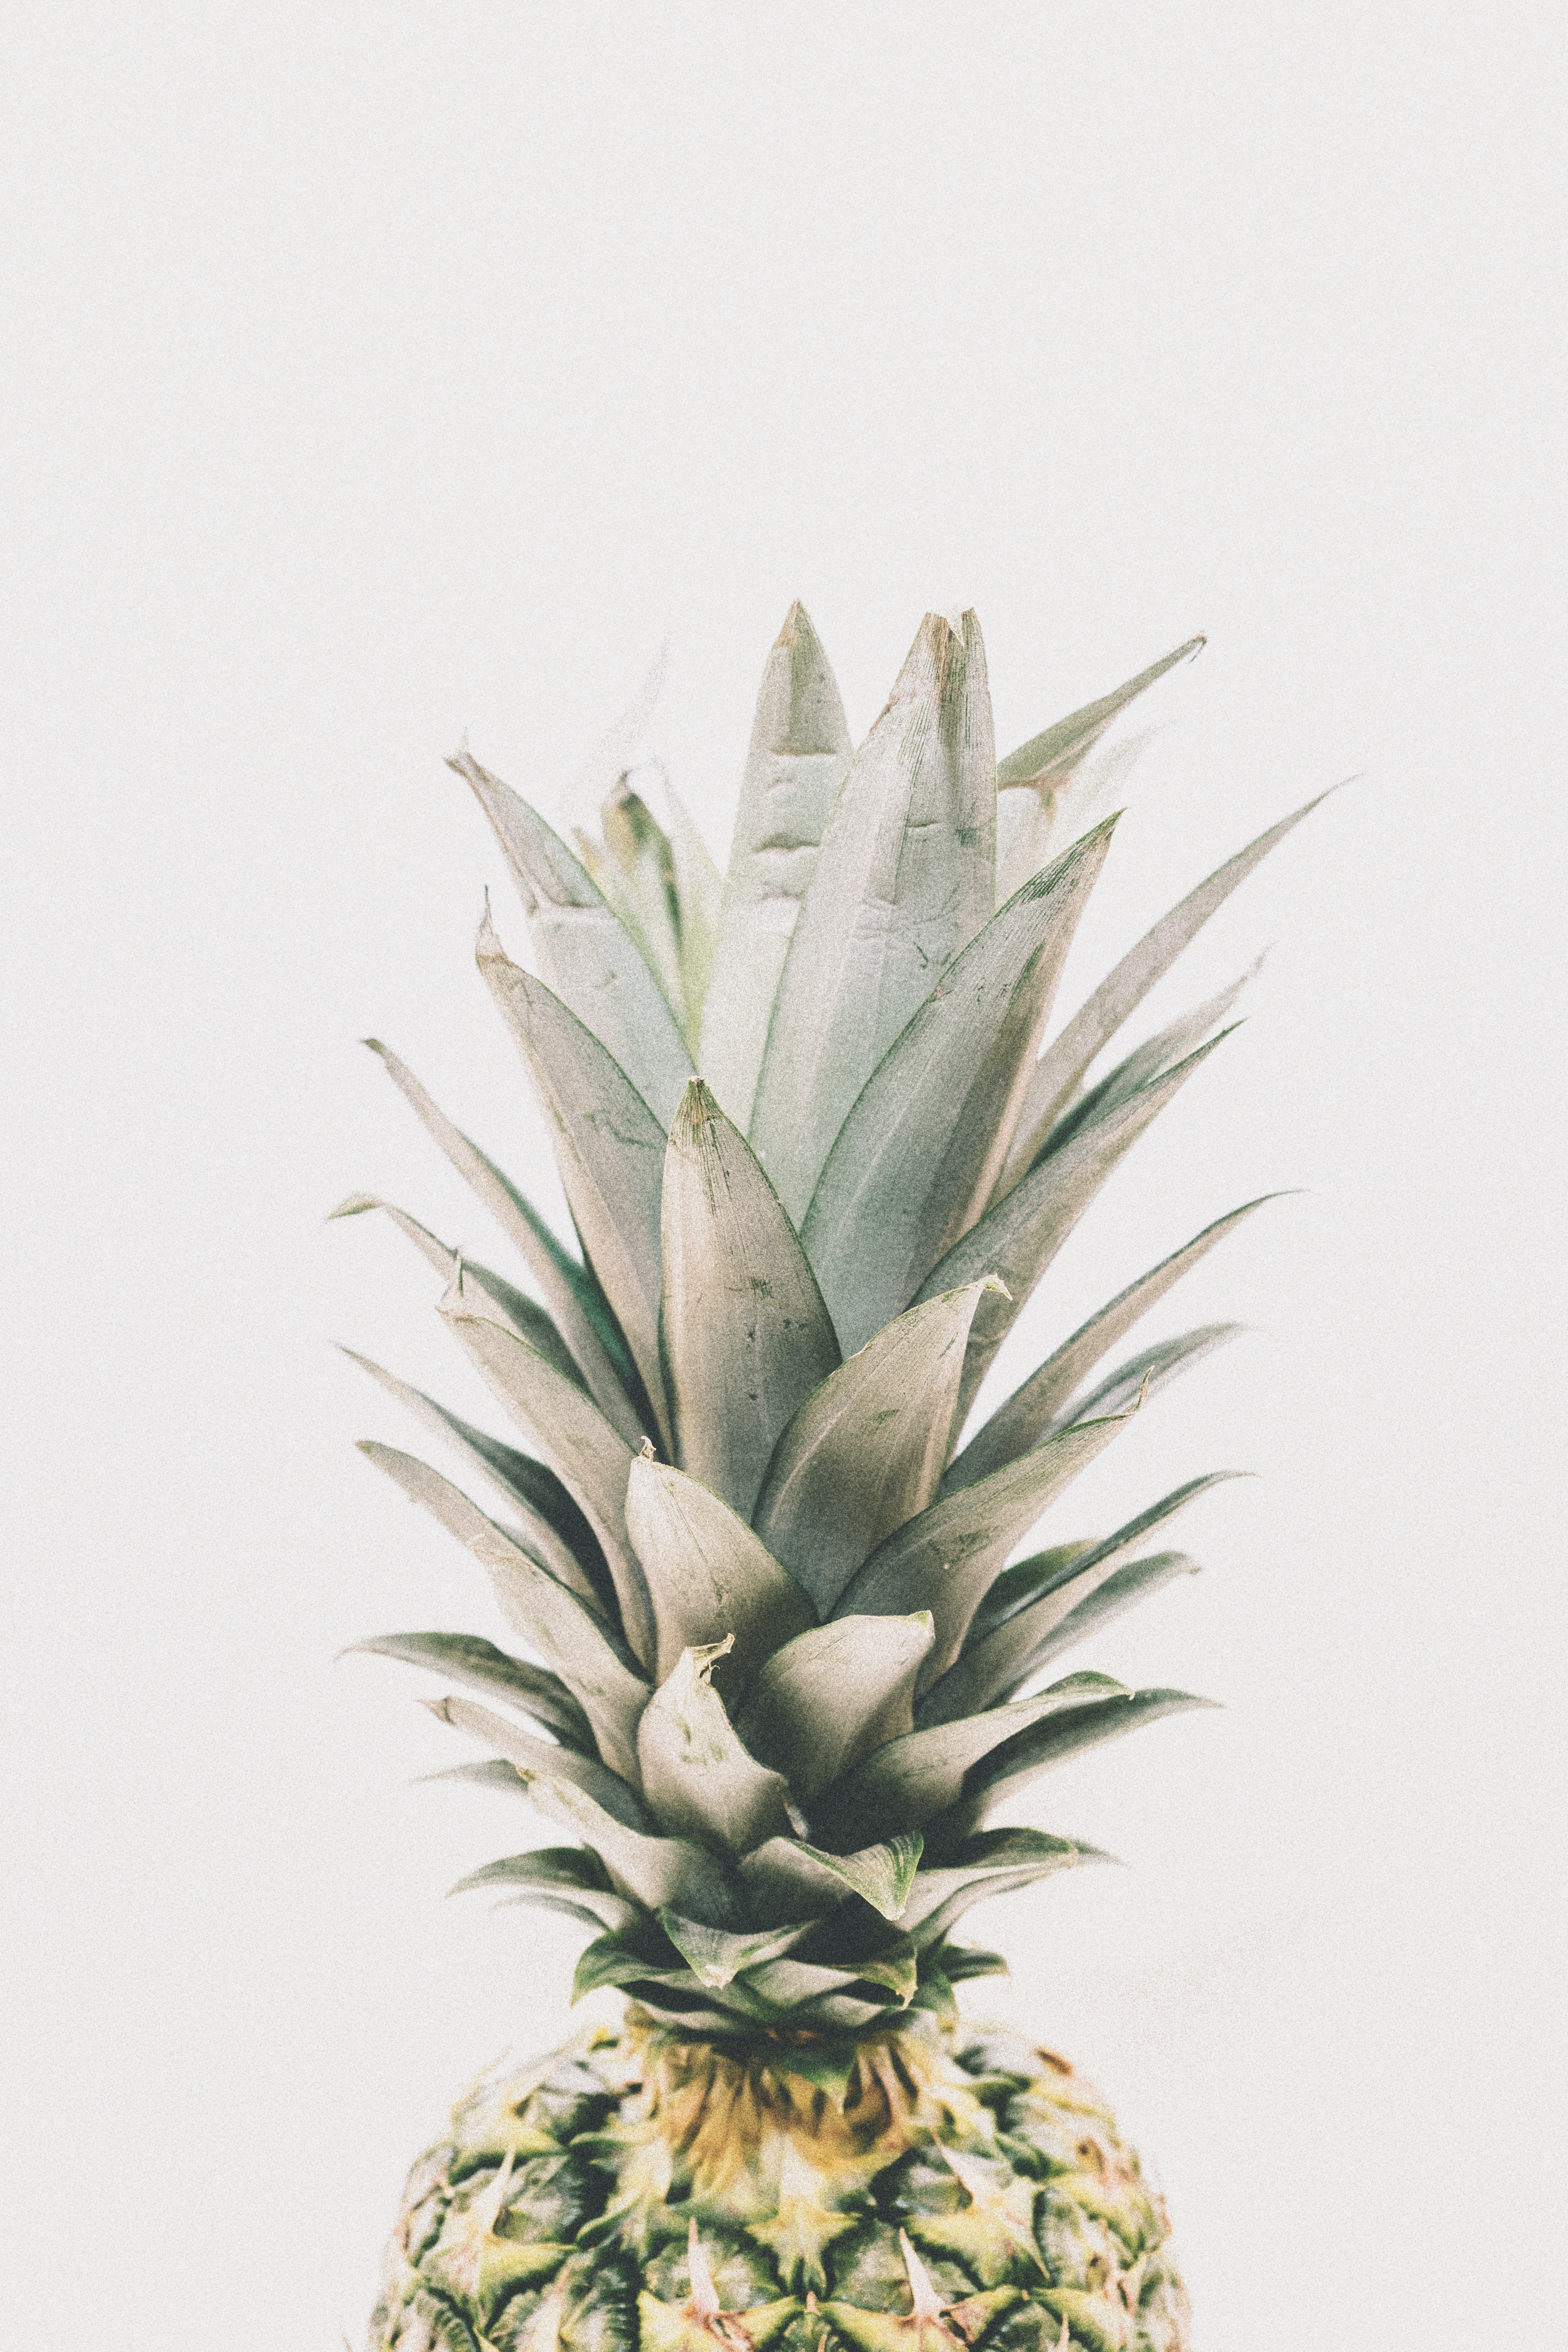 The top of a pineapple.